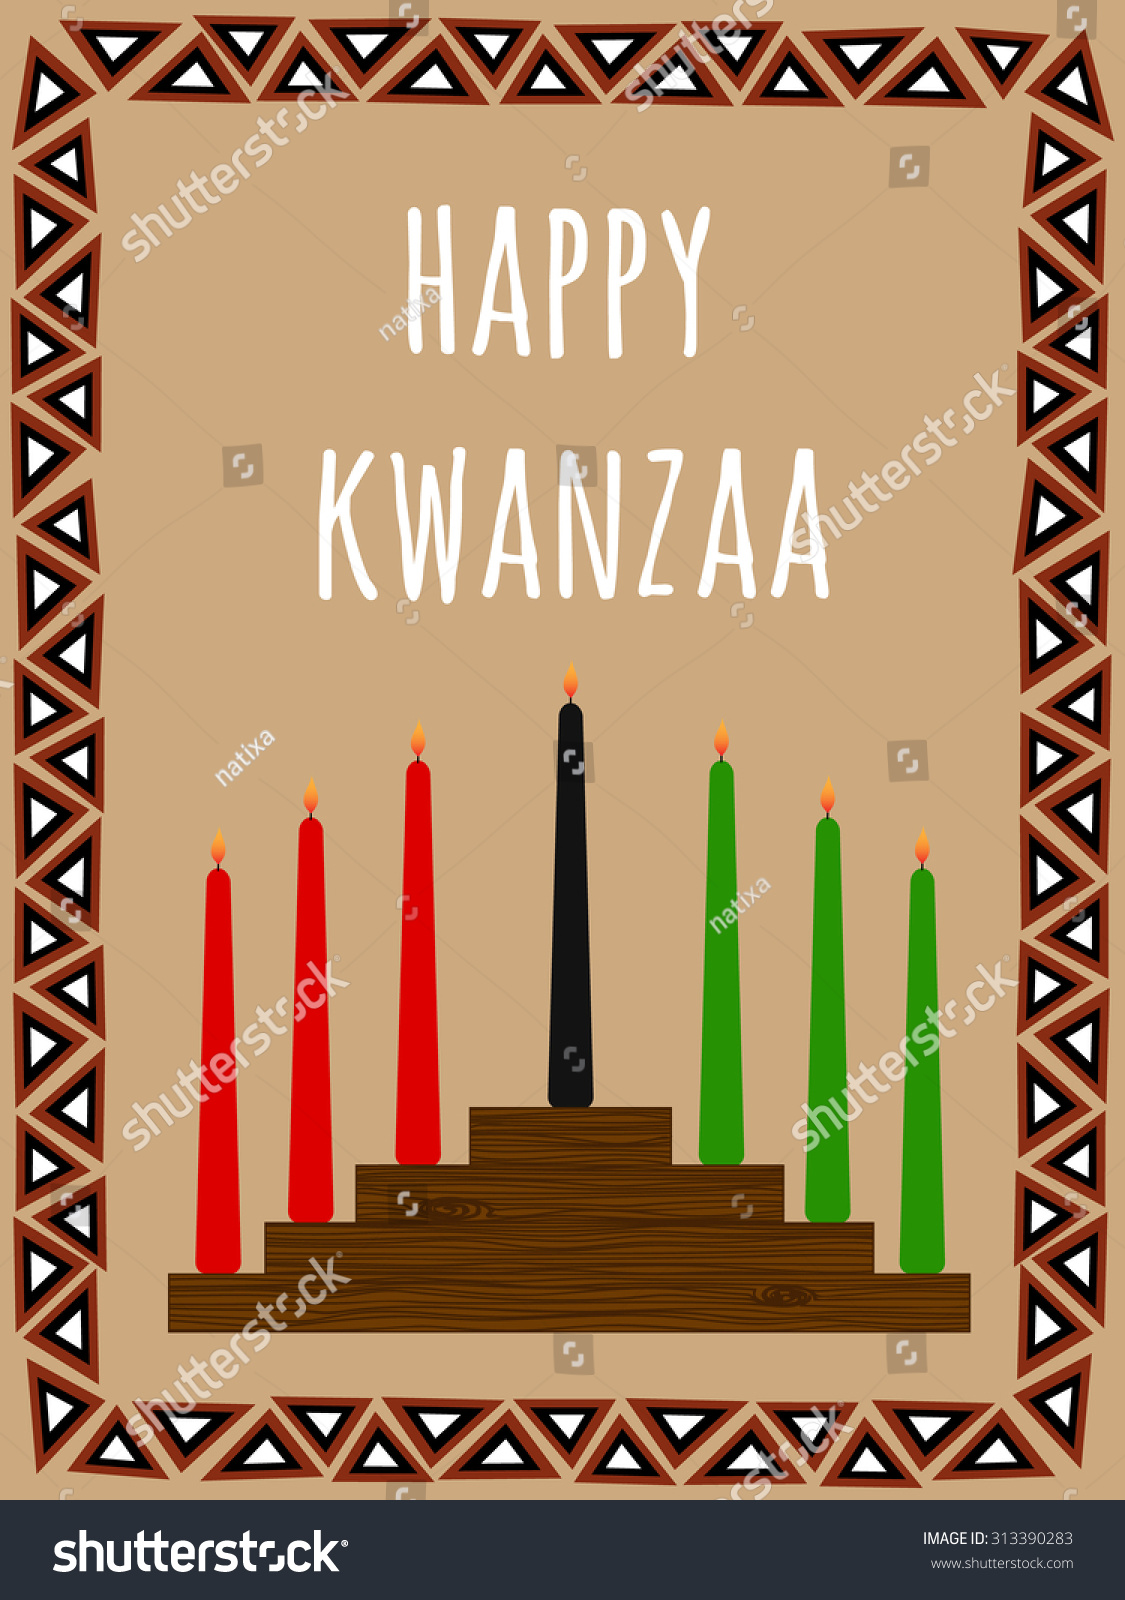 Kwanzaa Postcard With A Seven Candles Candlestick African